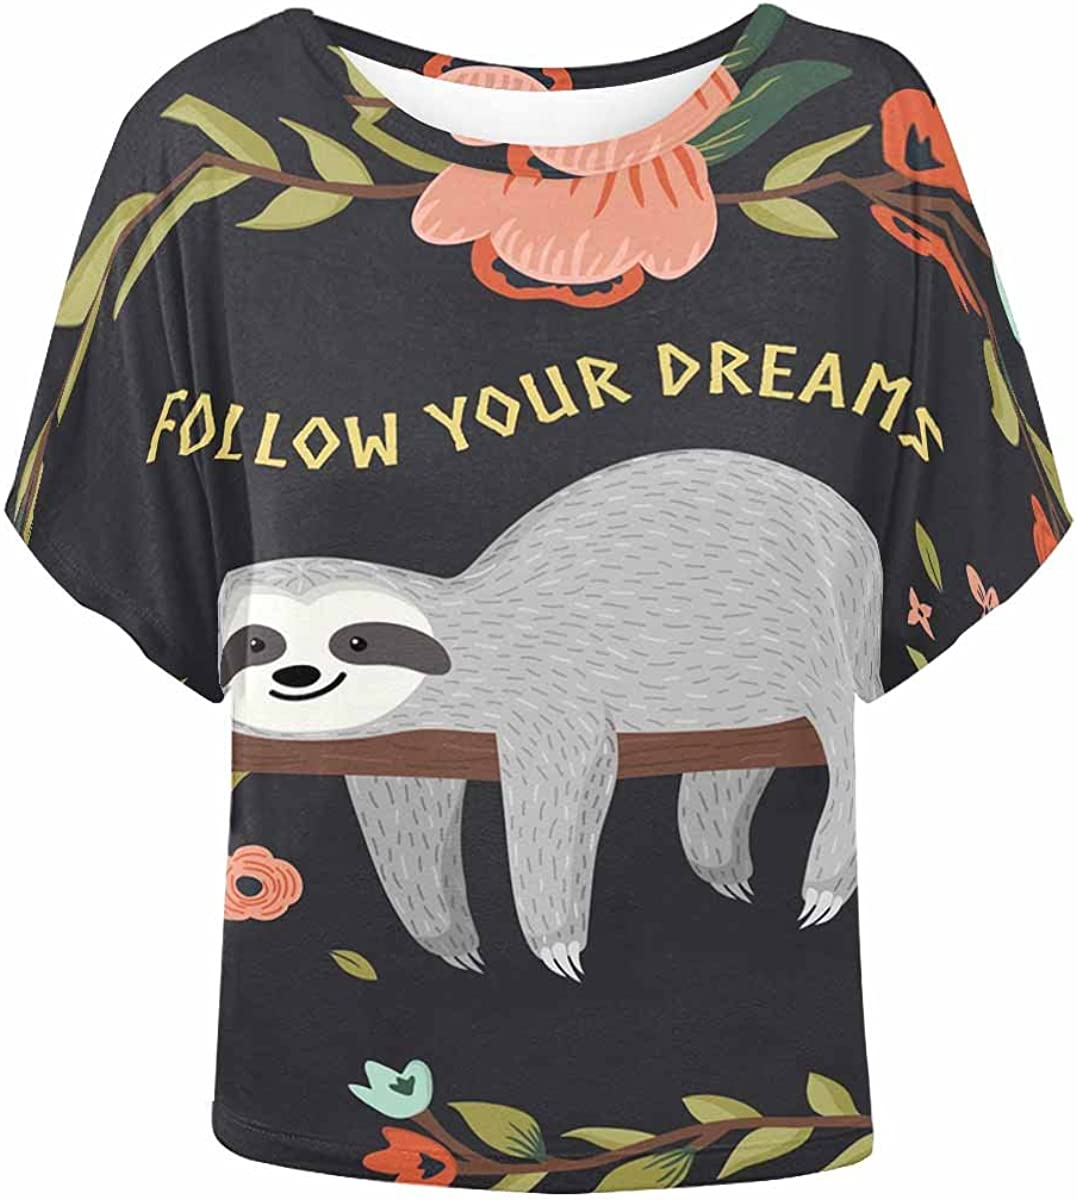 INTERESTPRINT Womens Crew Neck Pullover Donuts Colorful Casual Sweatshirt Tops XS-XL